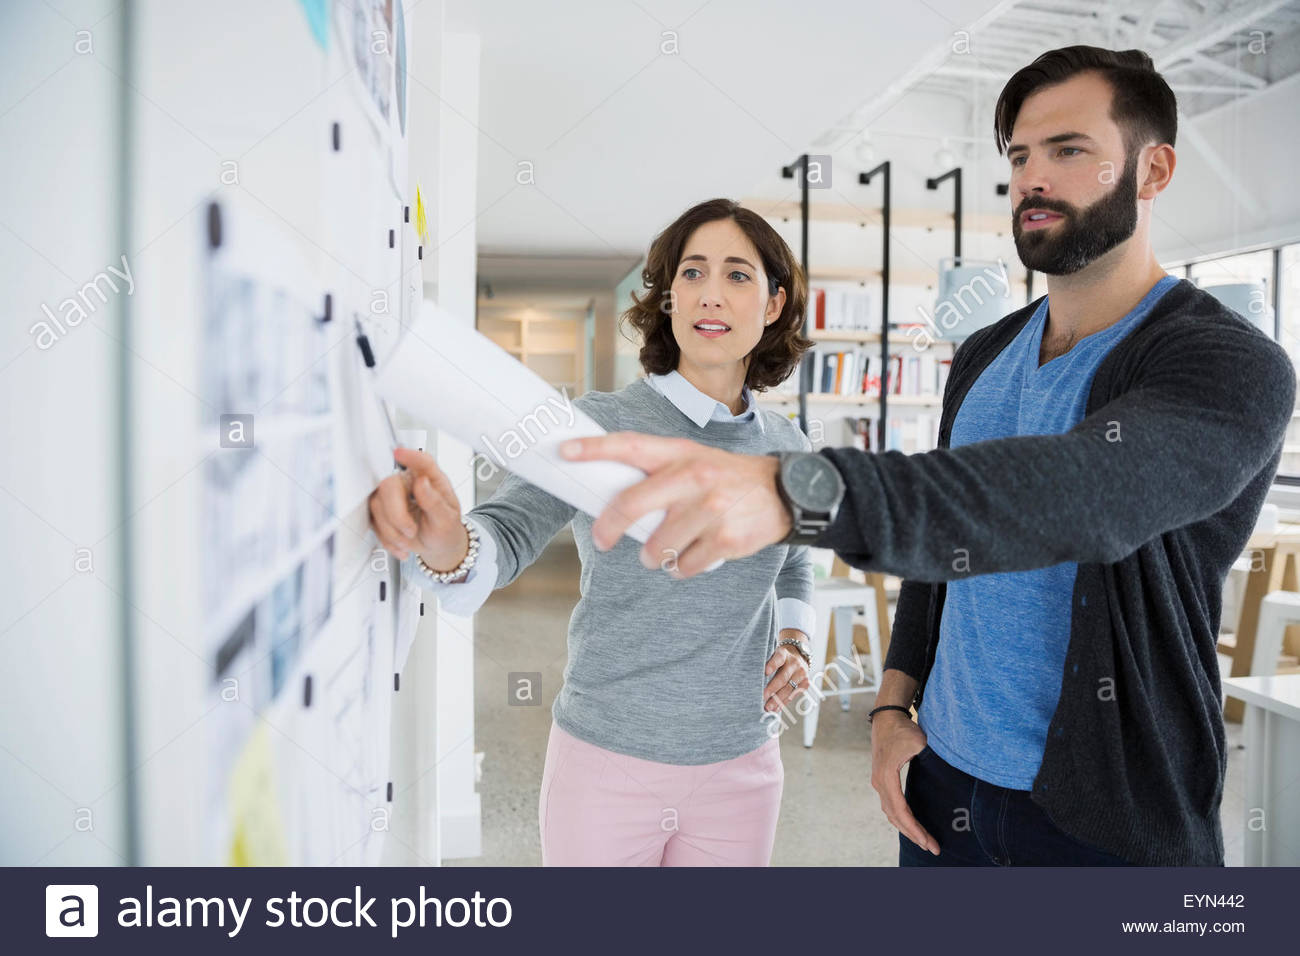 Architects meeting and discussing blueprints in office - Stock Image